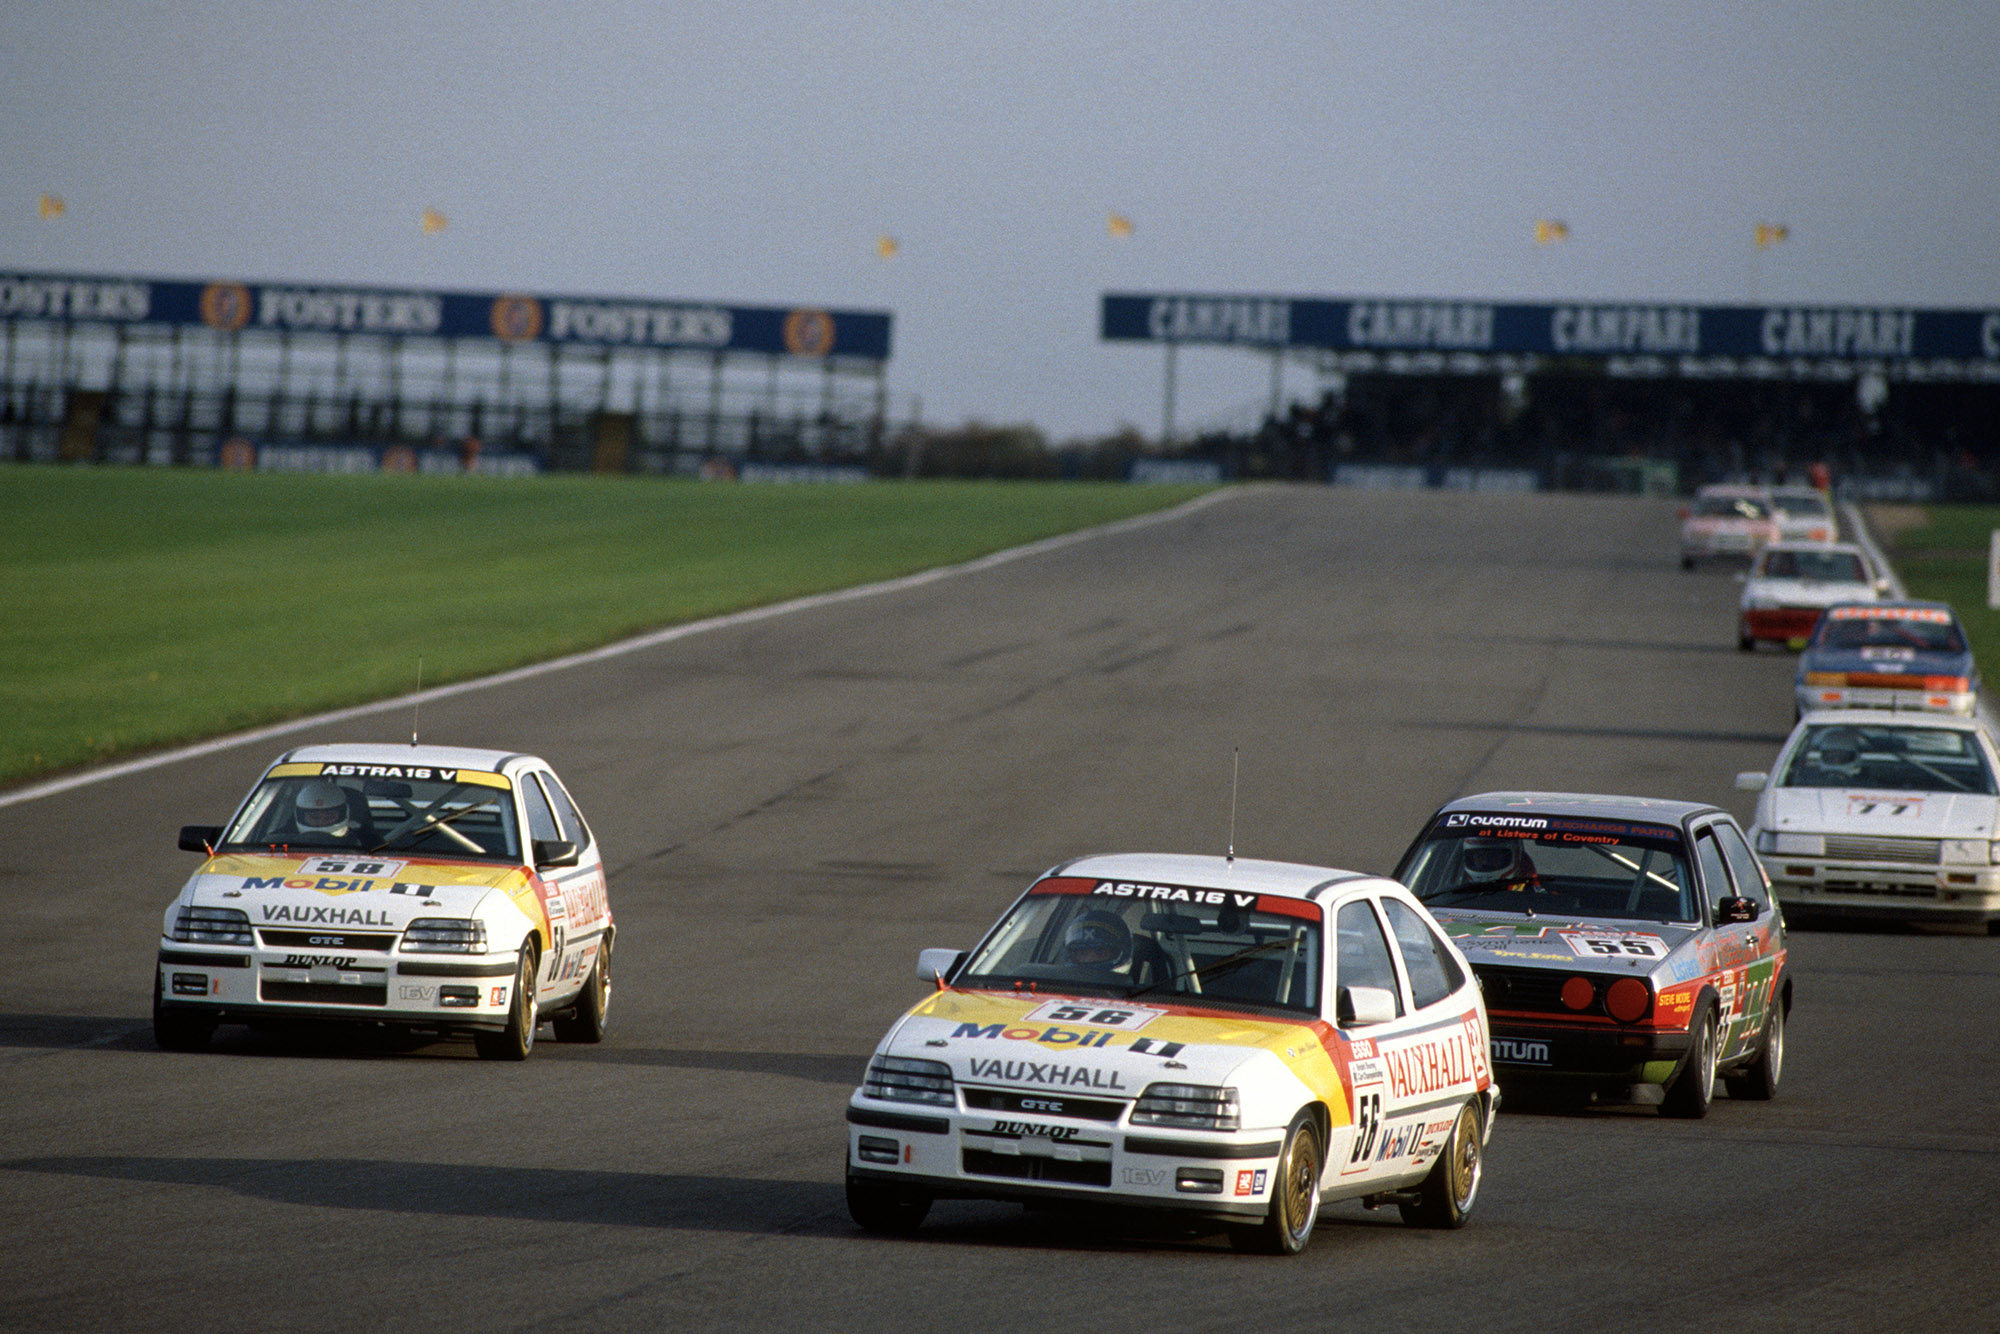 John Cleland leading at Silverstone in the 1989 BTCC